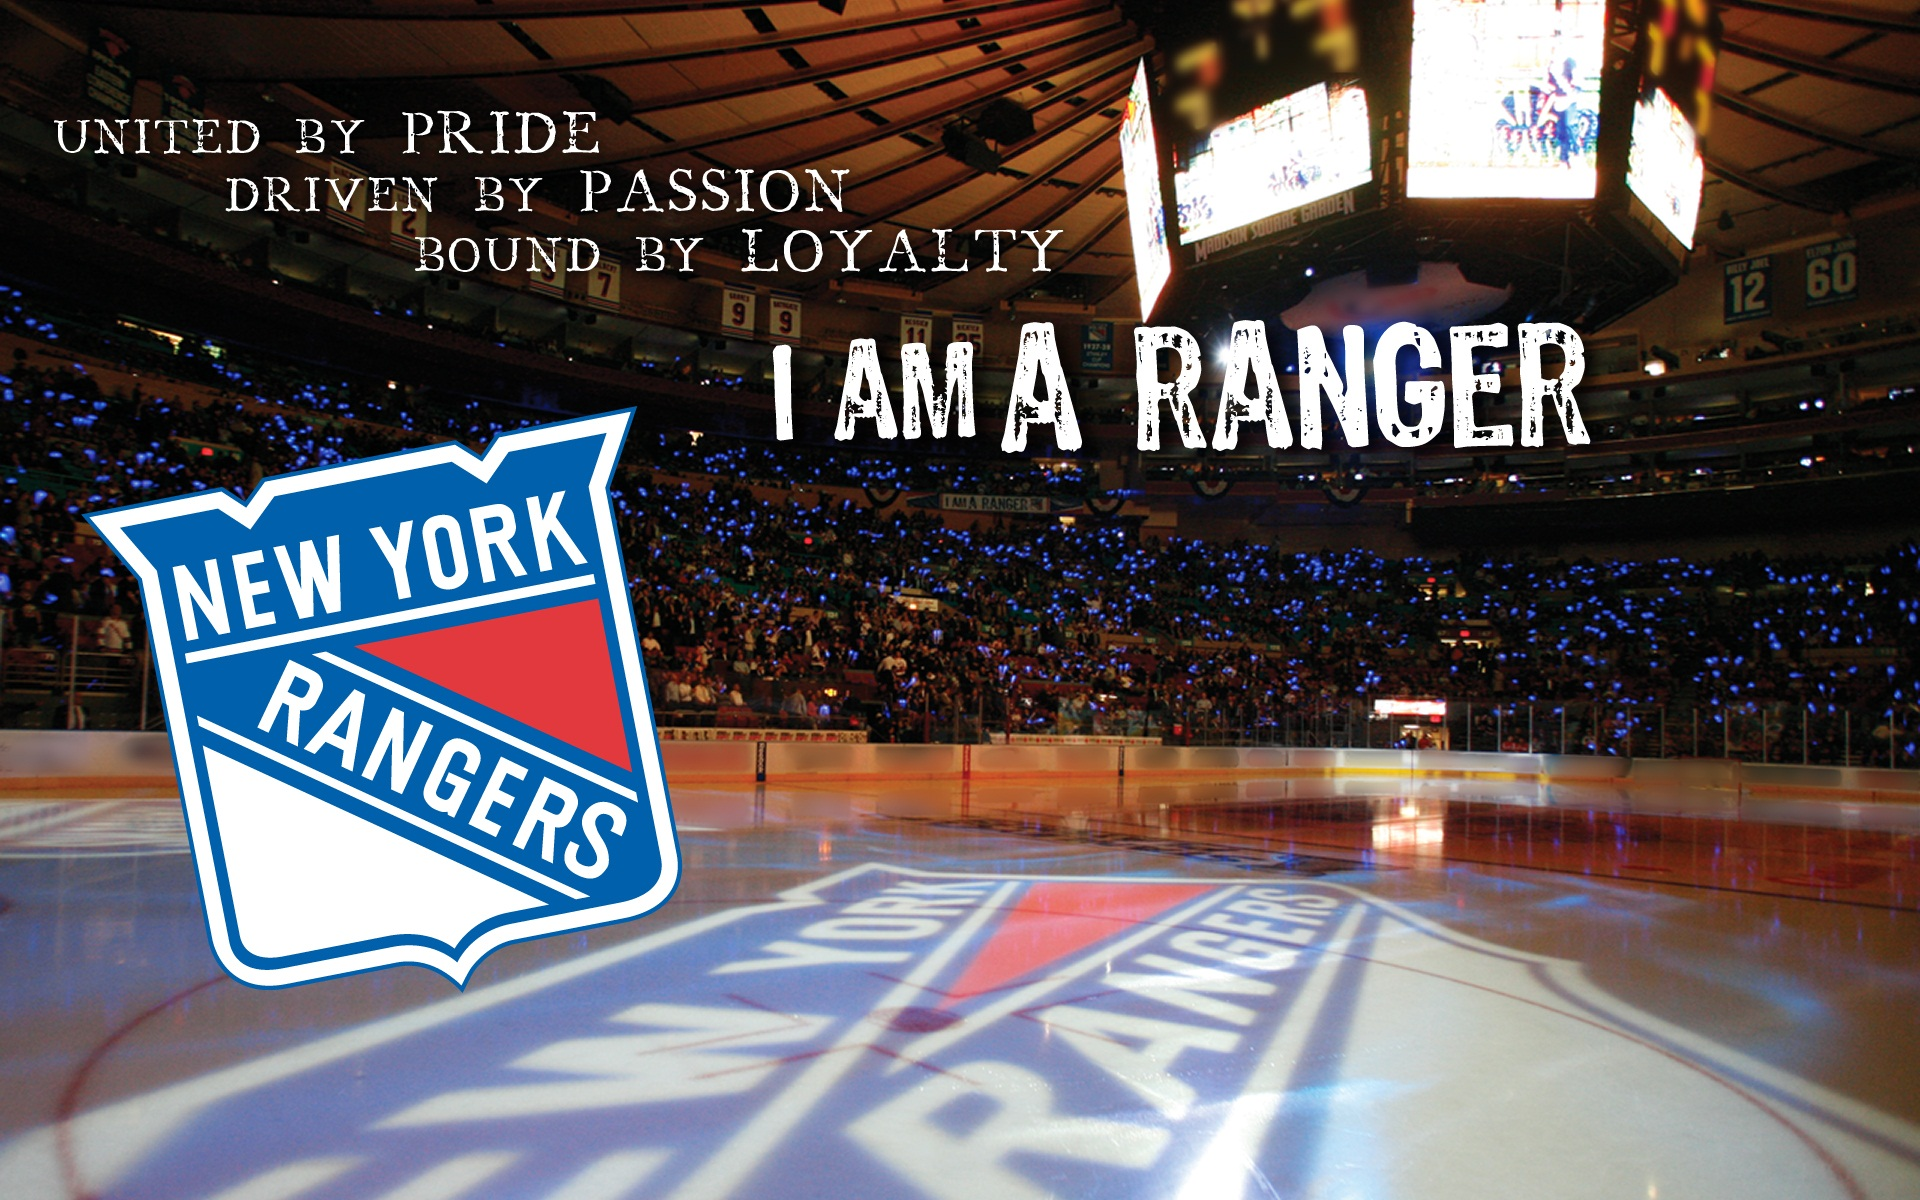 If you like New York Rangers, surely you'll love this wallpaper we have choosen for you! Let us know if you like it.